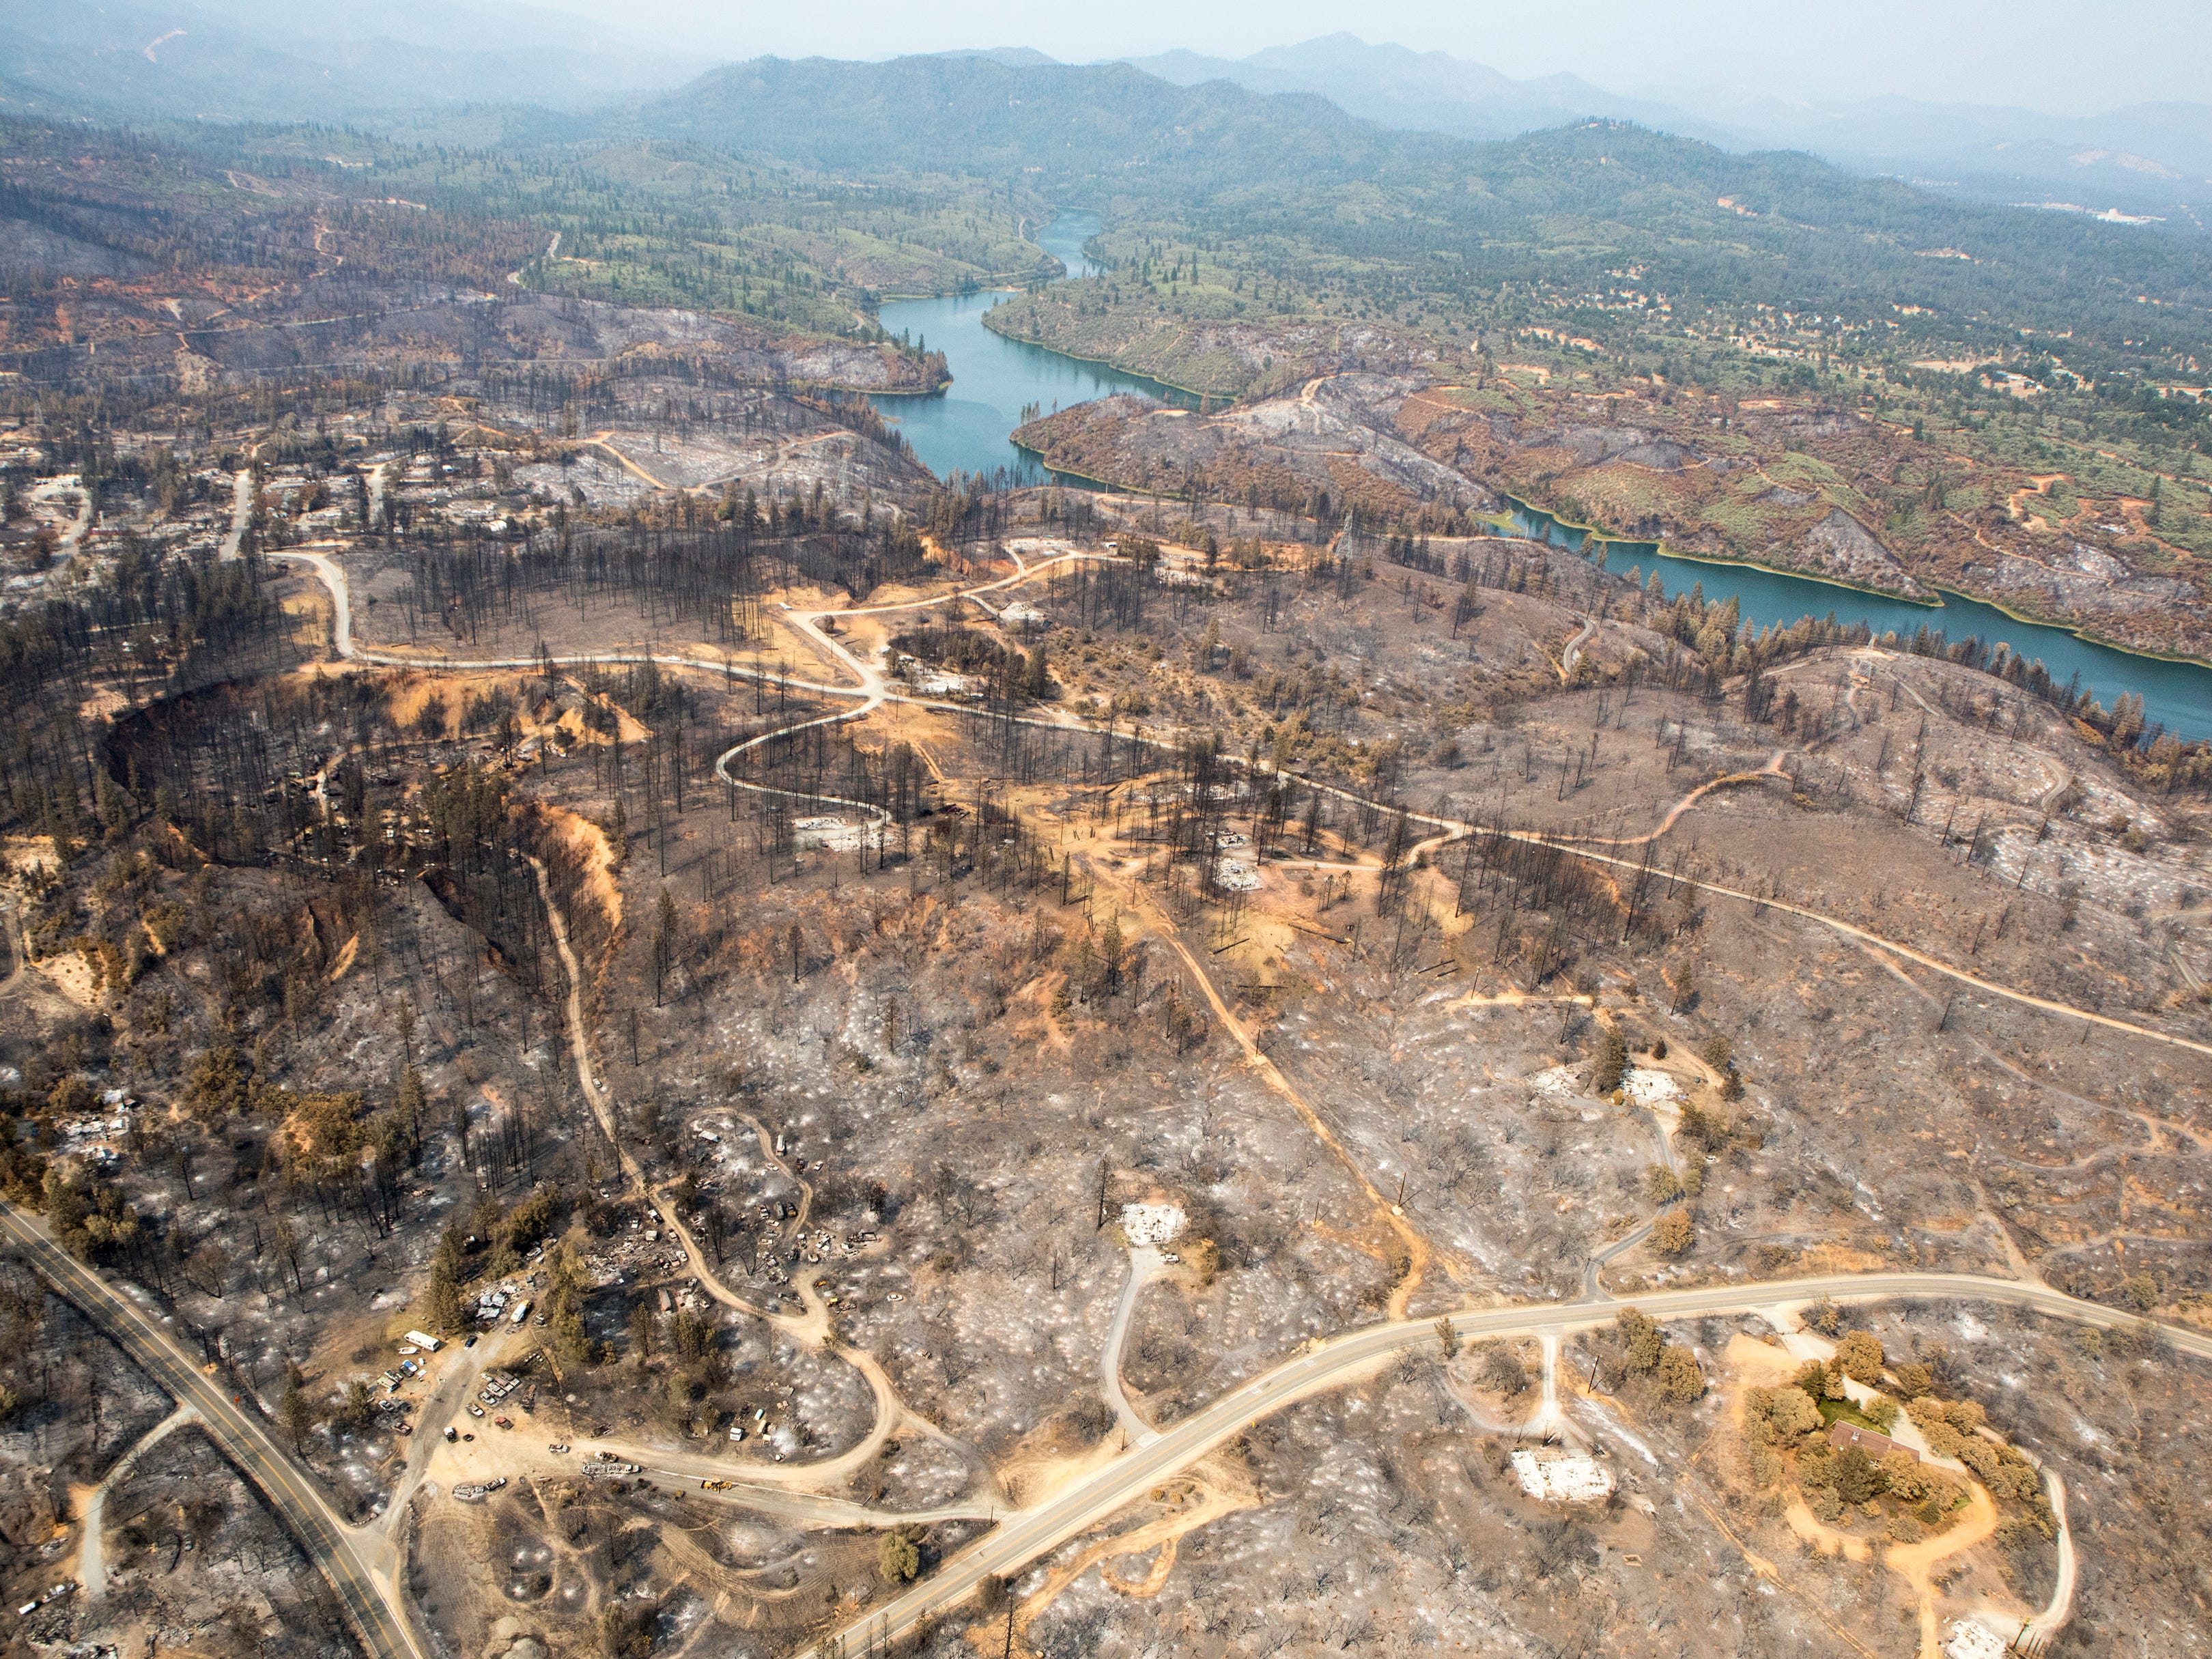 Aerial of the Keswick Dam and decimated Keswick area following the Carr fire in Shasta Co., Calif., Tuesday, August 21, 2018.